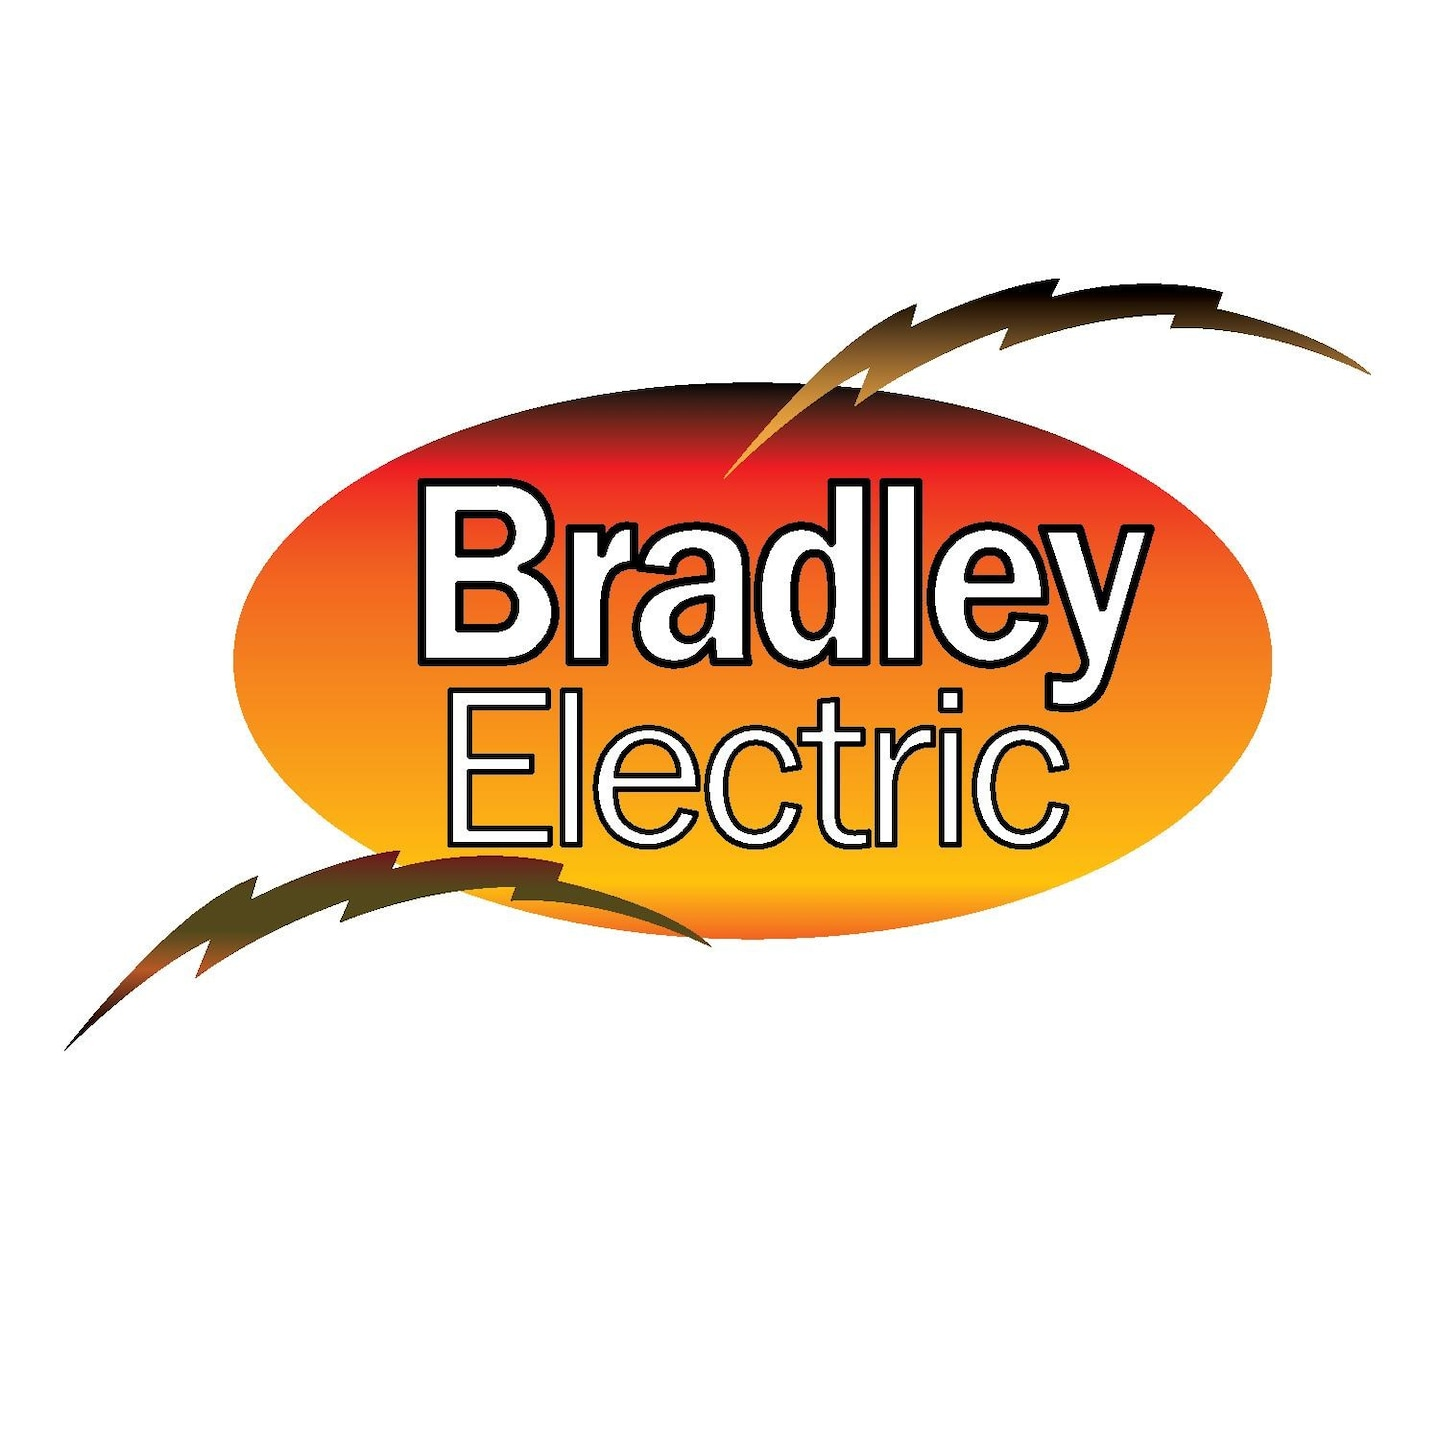 Bradley Electric logo